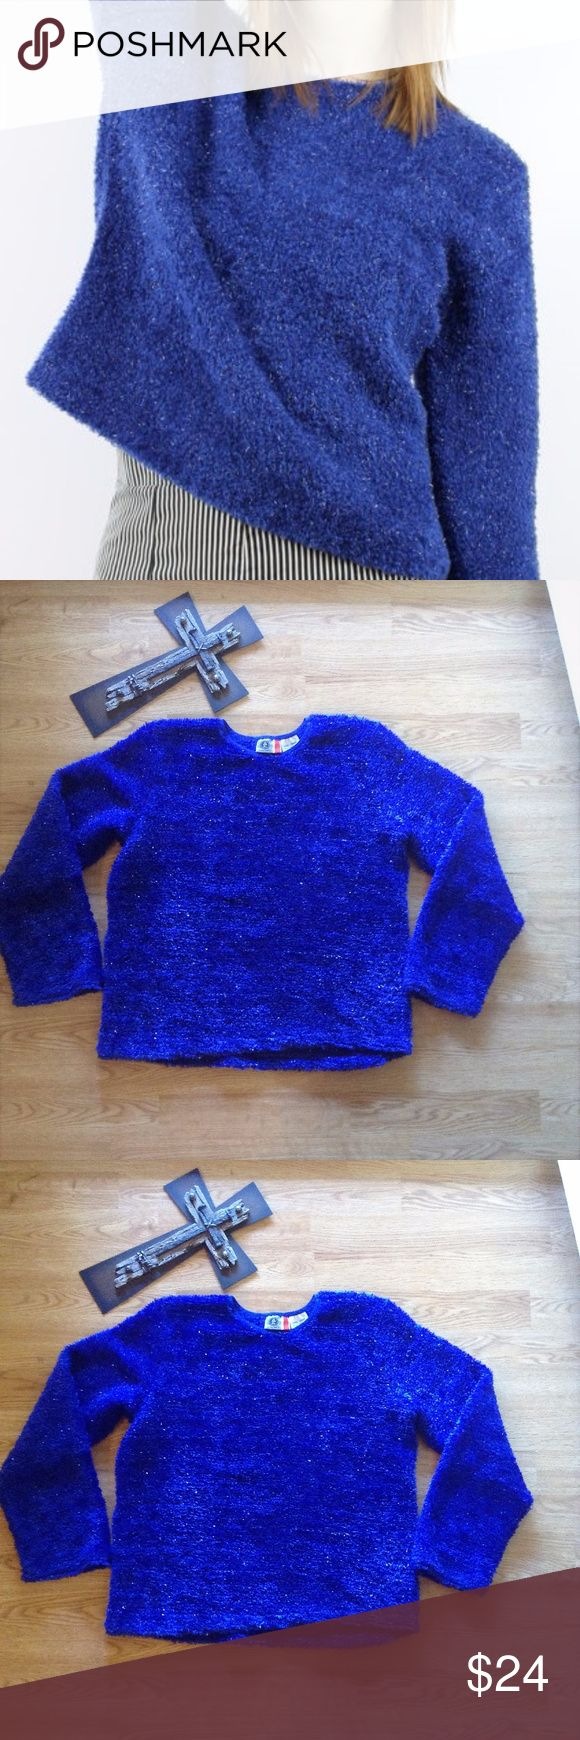 "Arizona Jeans Co fuzzy soft sweater Vintage nineties style  BLUE Arizona Jeans Co FUZZY SWEATER with METALLIC SILVER THREADING. Longsleeve 92% acrylic / 6% nylon / 2% spandex  Soft, fuzzy sweater Color:blue with specks of sparkly silver  Juniors size LARGE does have a little stretch  may not fit true to size see measurements  Approx. 15"" across the shoulder, 19"" across the bottom open 22' waist and 22"" length, pit-pit So trendy Arizona Jean Company Sweaters Crew & Scoop Necks"